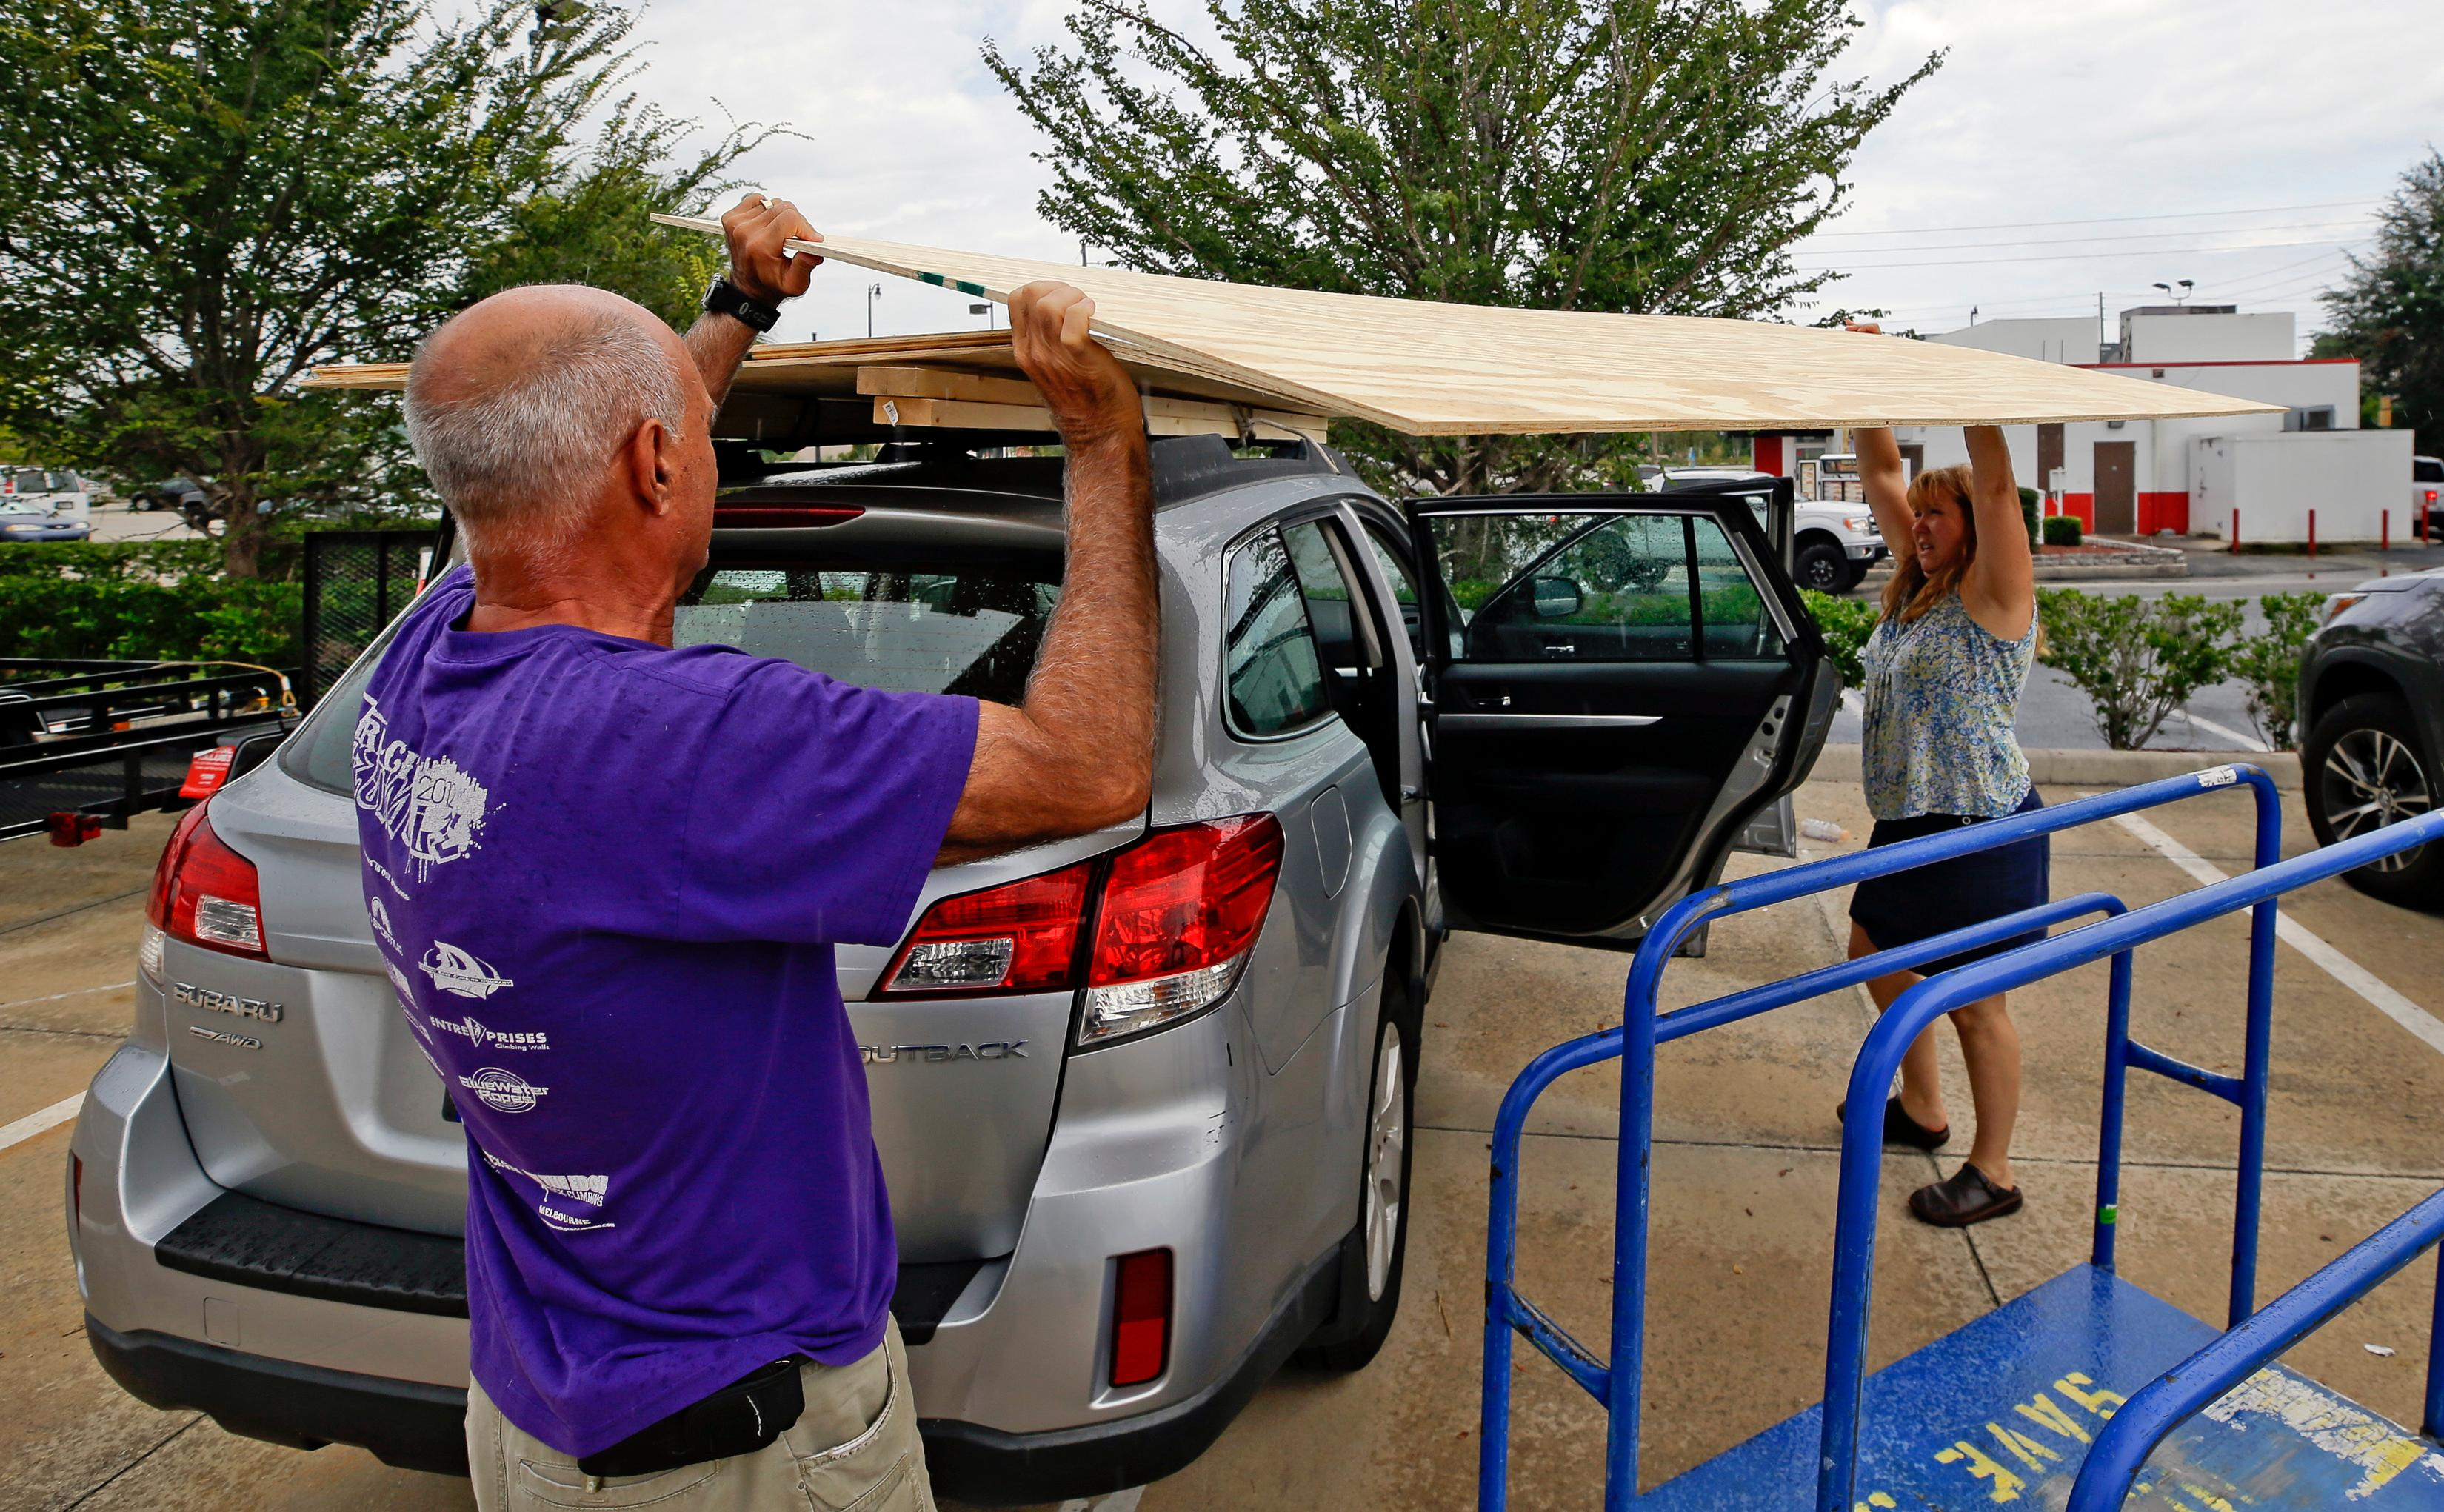 Alex, left, and Cynthia Stone, of Maitland, Fla. load plywood on the roof of their vehicle as they prepare for Hurricane Irma, Wednesday, Sept. 6, 2017, in Orlando, Fla.  Throughout Florida, officials and residents are making preparations, but forecasts indicate the Keys could take the country's first blow from the Category 5 storm.  (AP Photo/John Raoux)